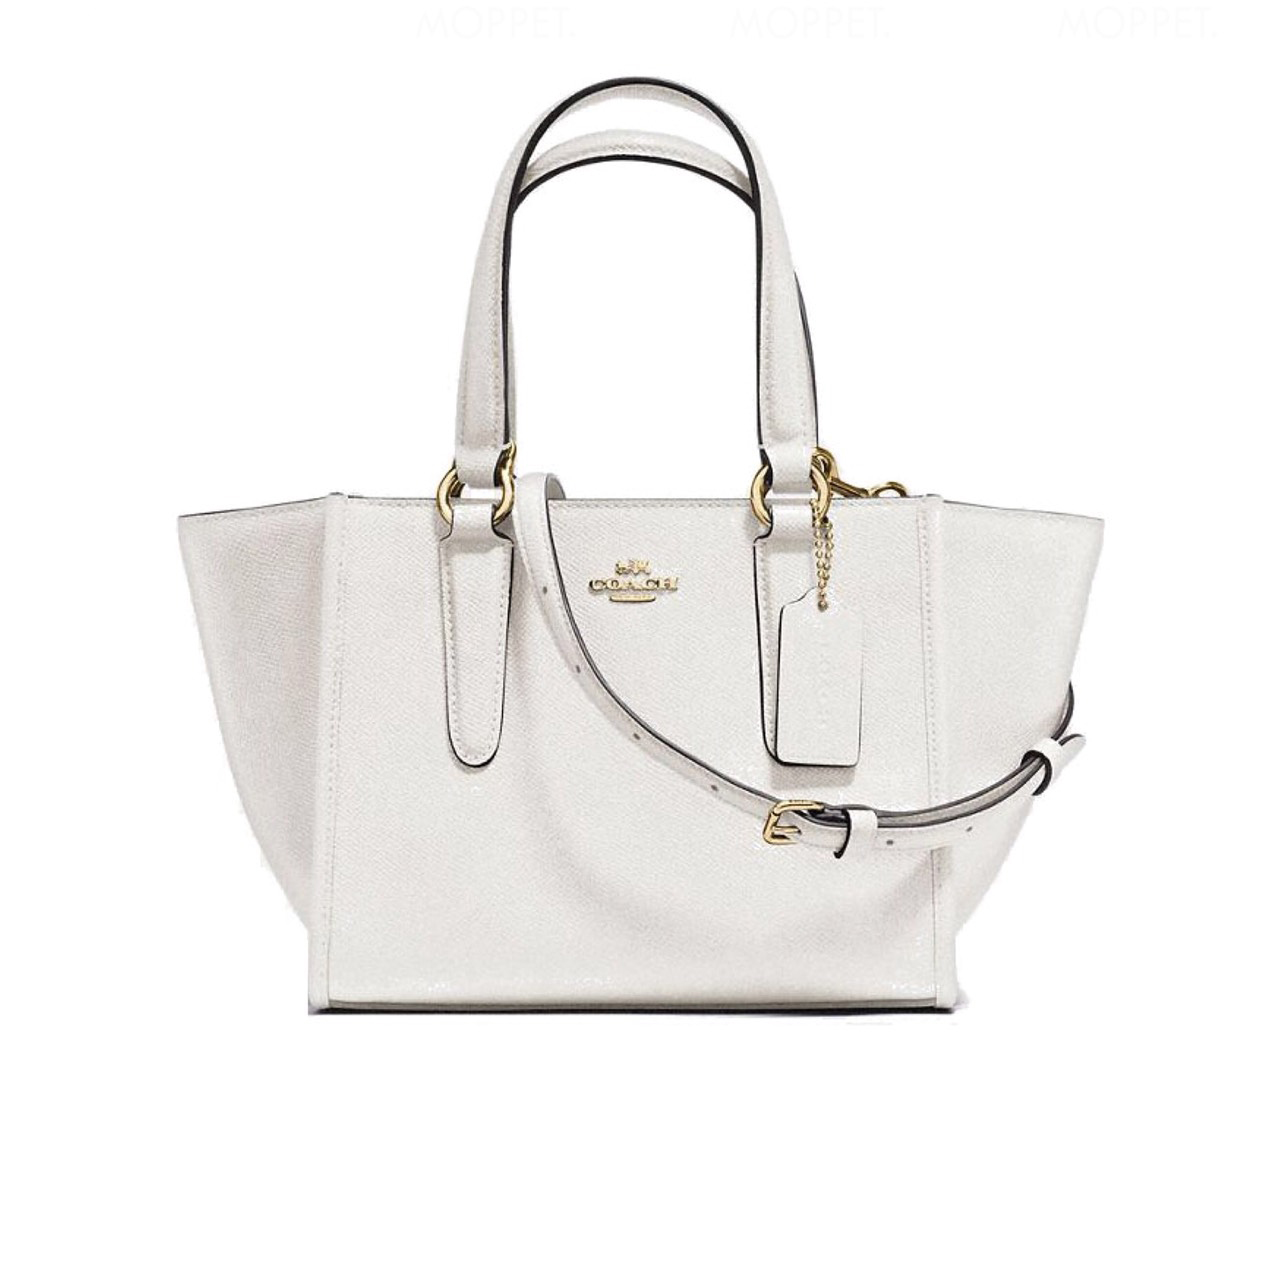 New Coach Crosby Carryall 21 in Chalk Leather GHW